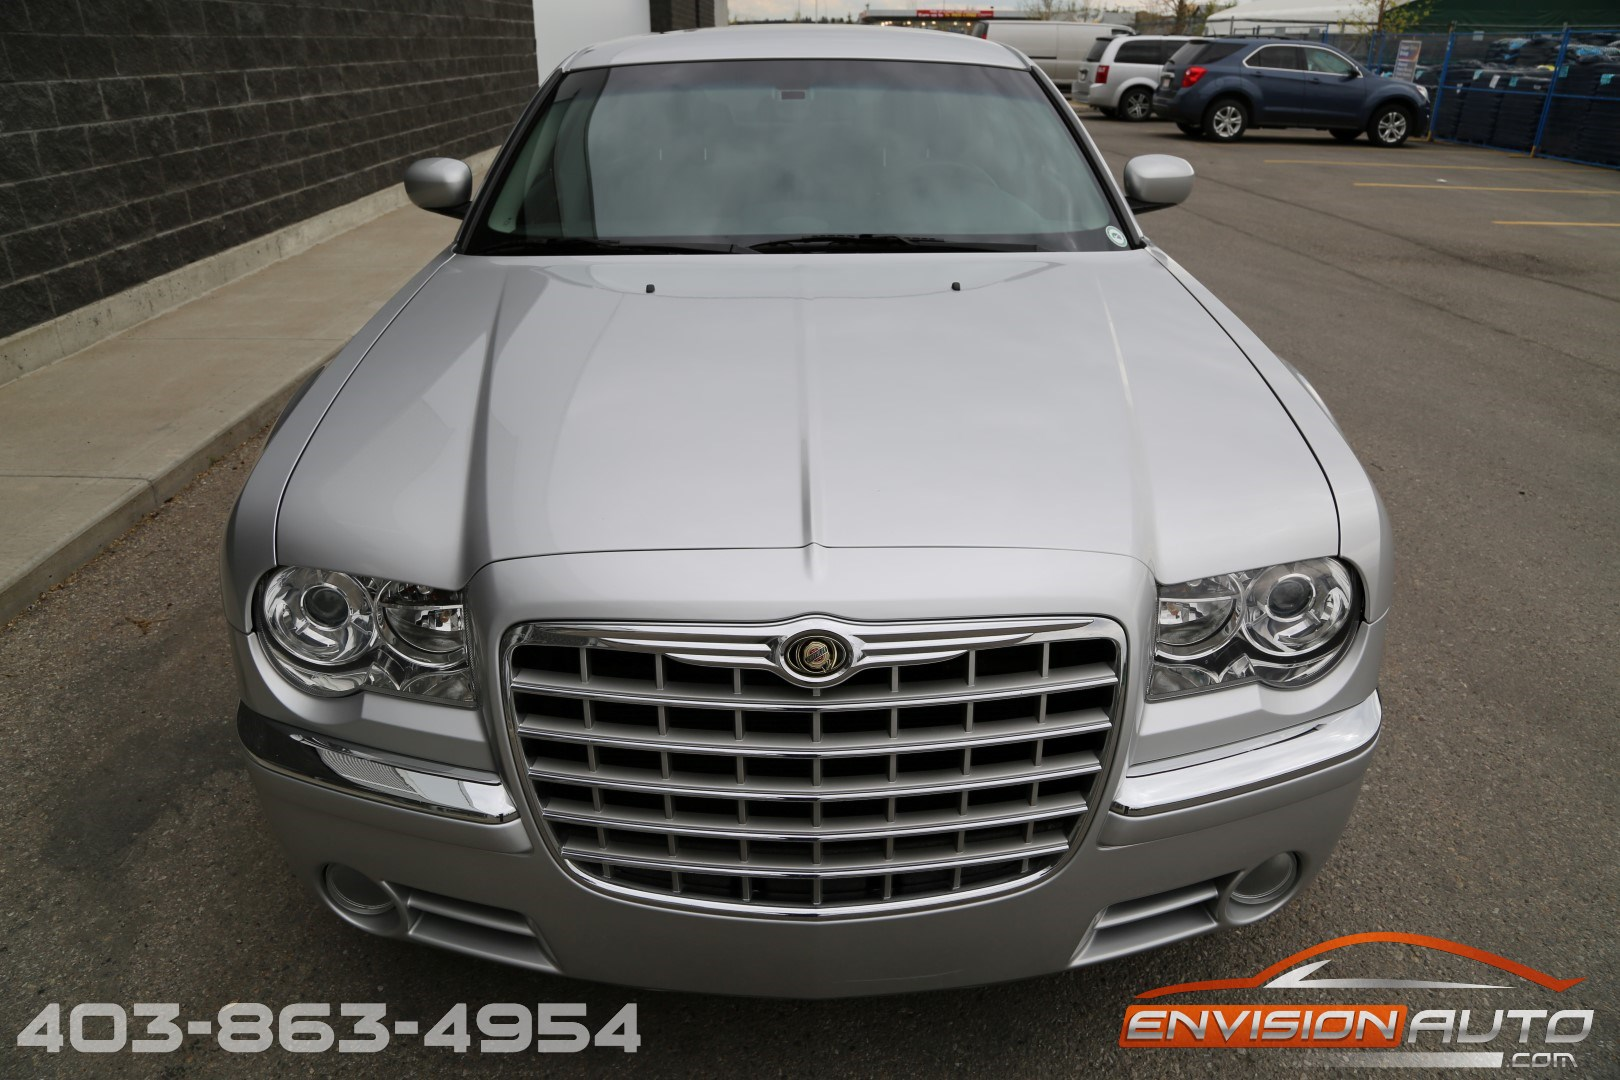 2007 chrysler 300c 5 7l hemi only 40kms envision auto. Black Bedroom Furniture Sets. Home Design Ideas